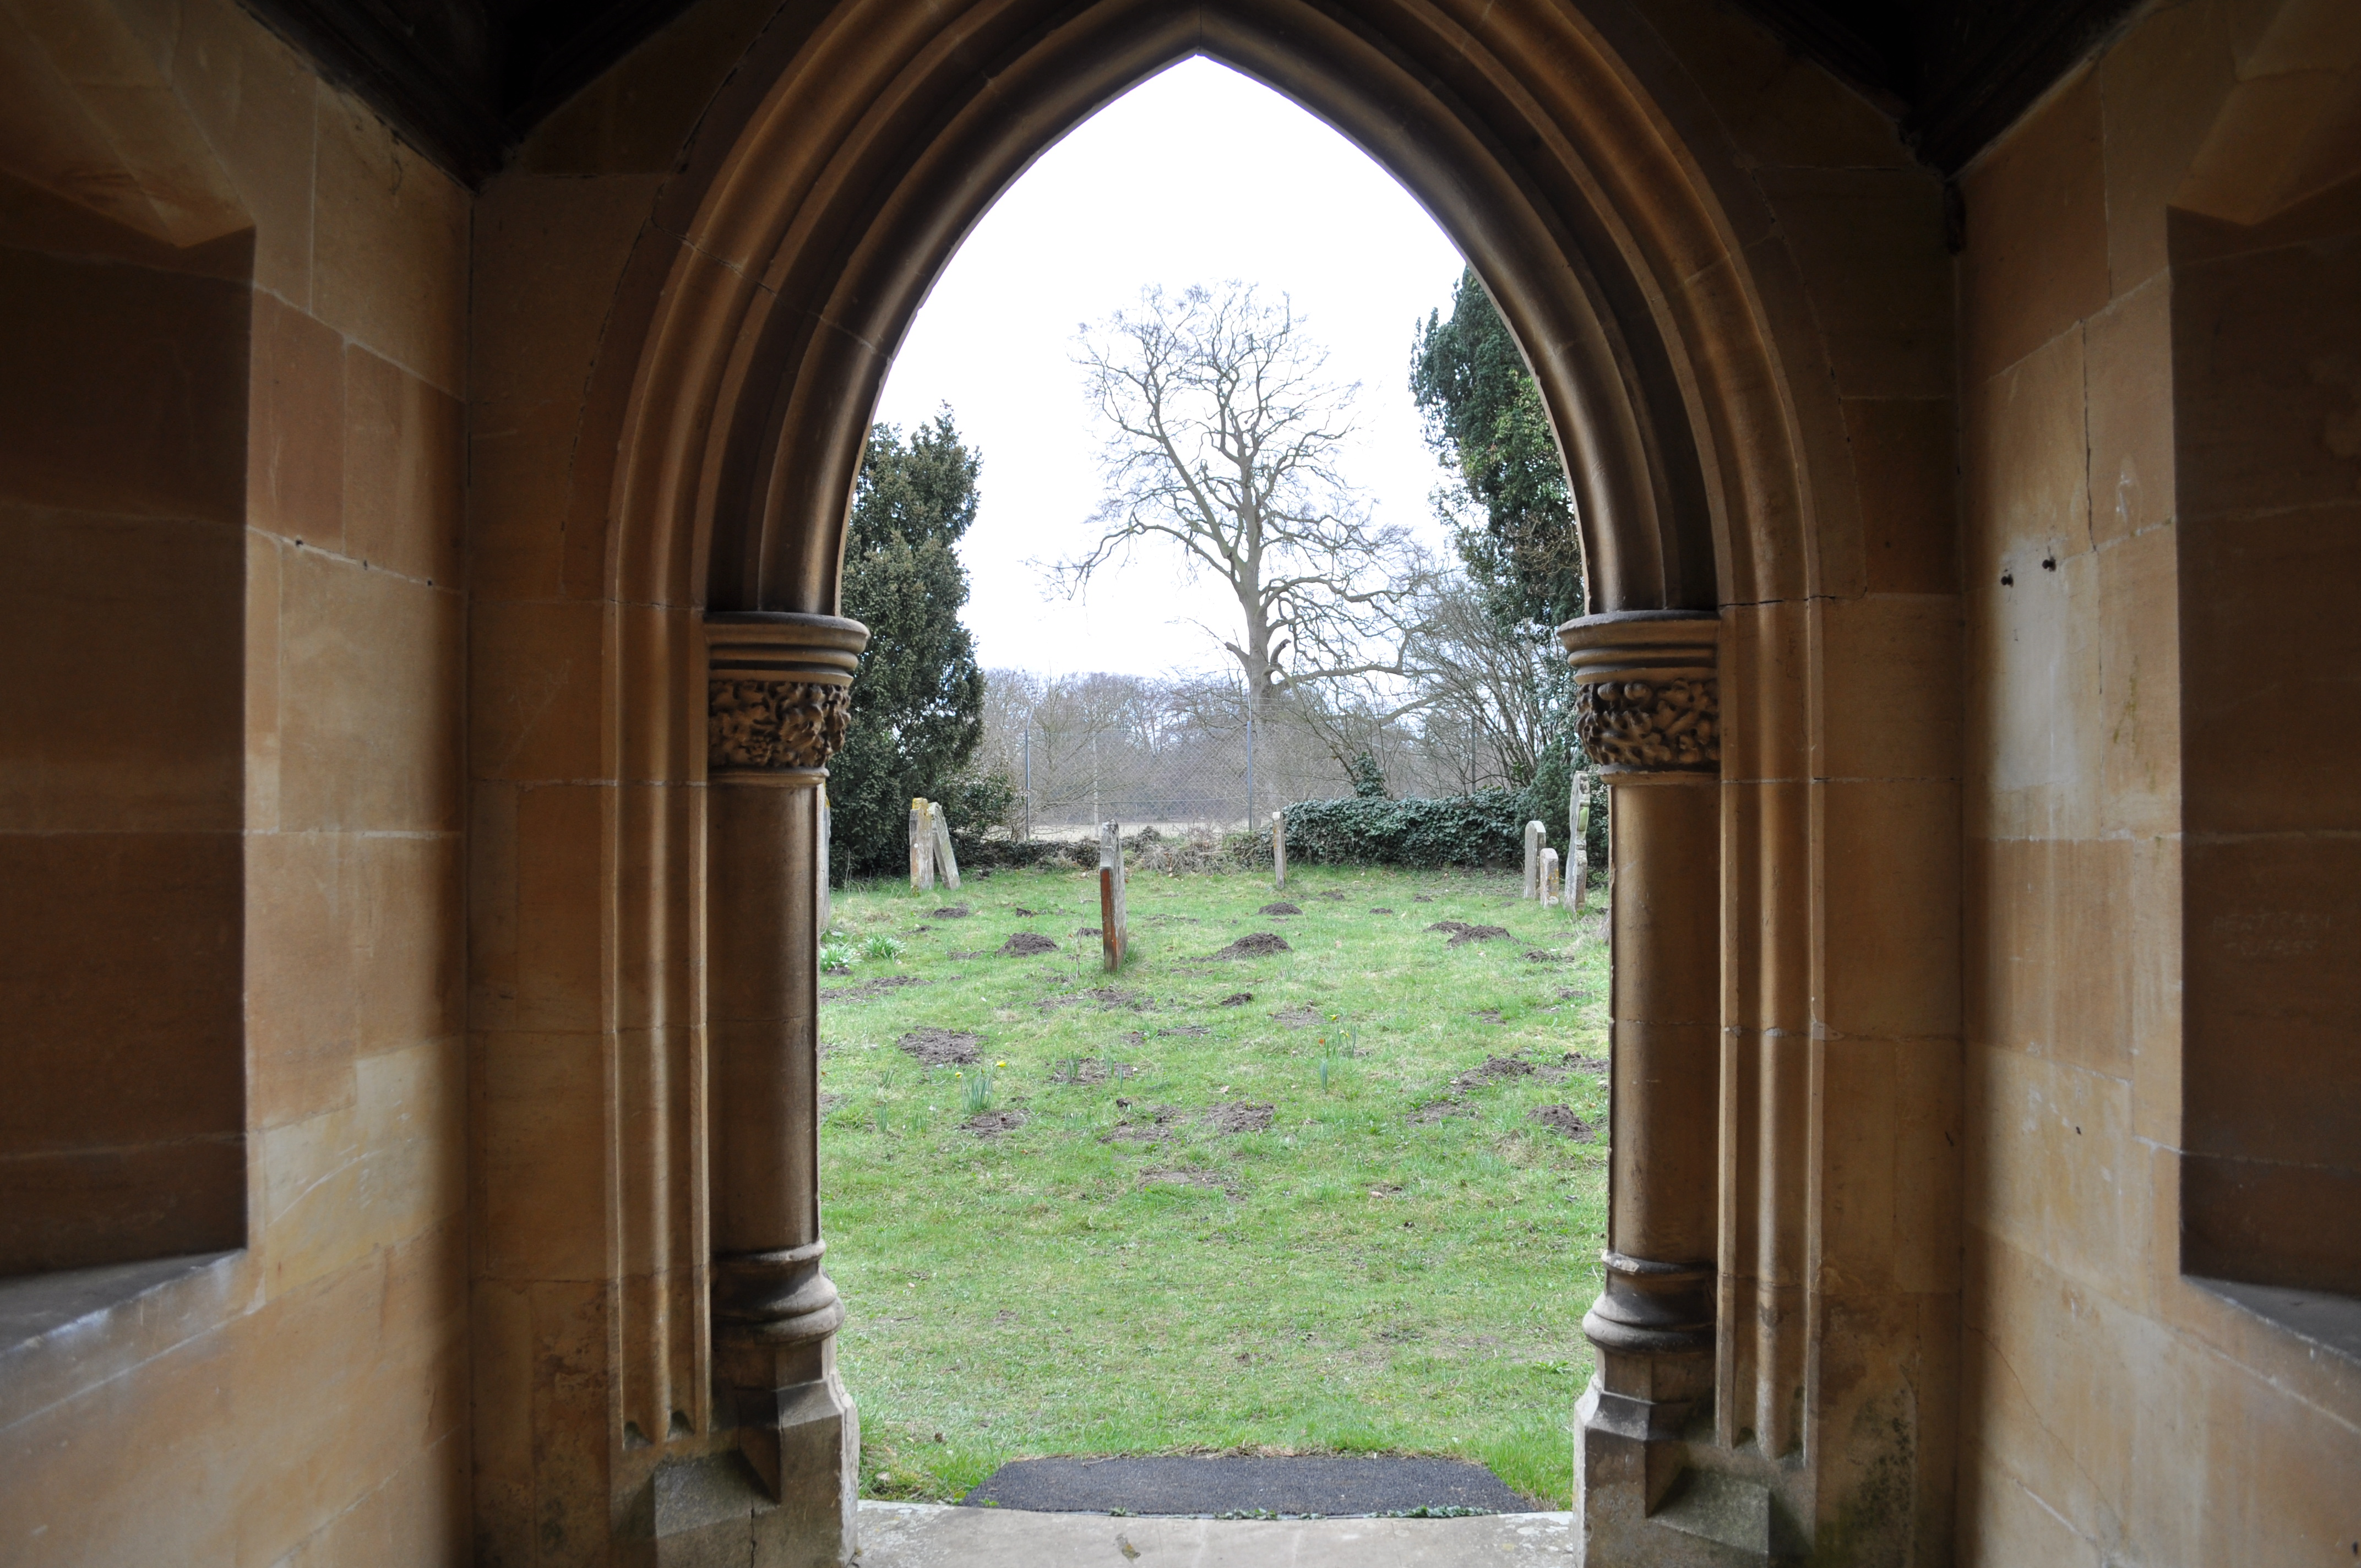 looking out door. File:St. Mary Church, West Tofts - Looking Out Of The Door O